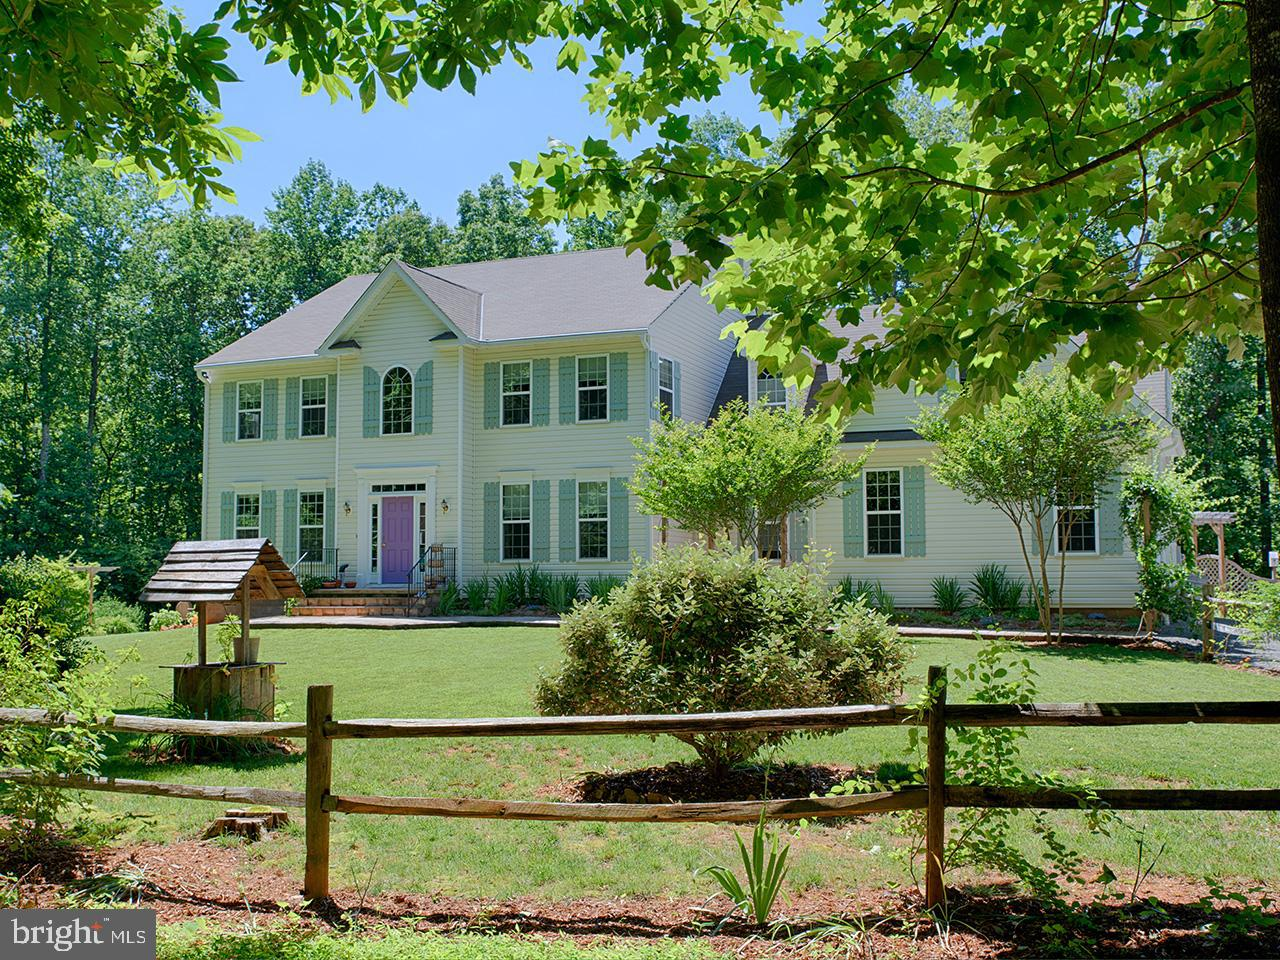 18248 BUZZARD HOLLOW ROAD, GORDONSVILLE, VA 22942